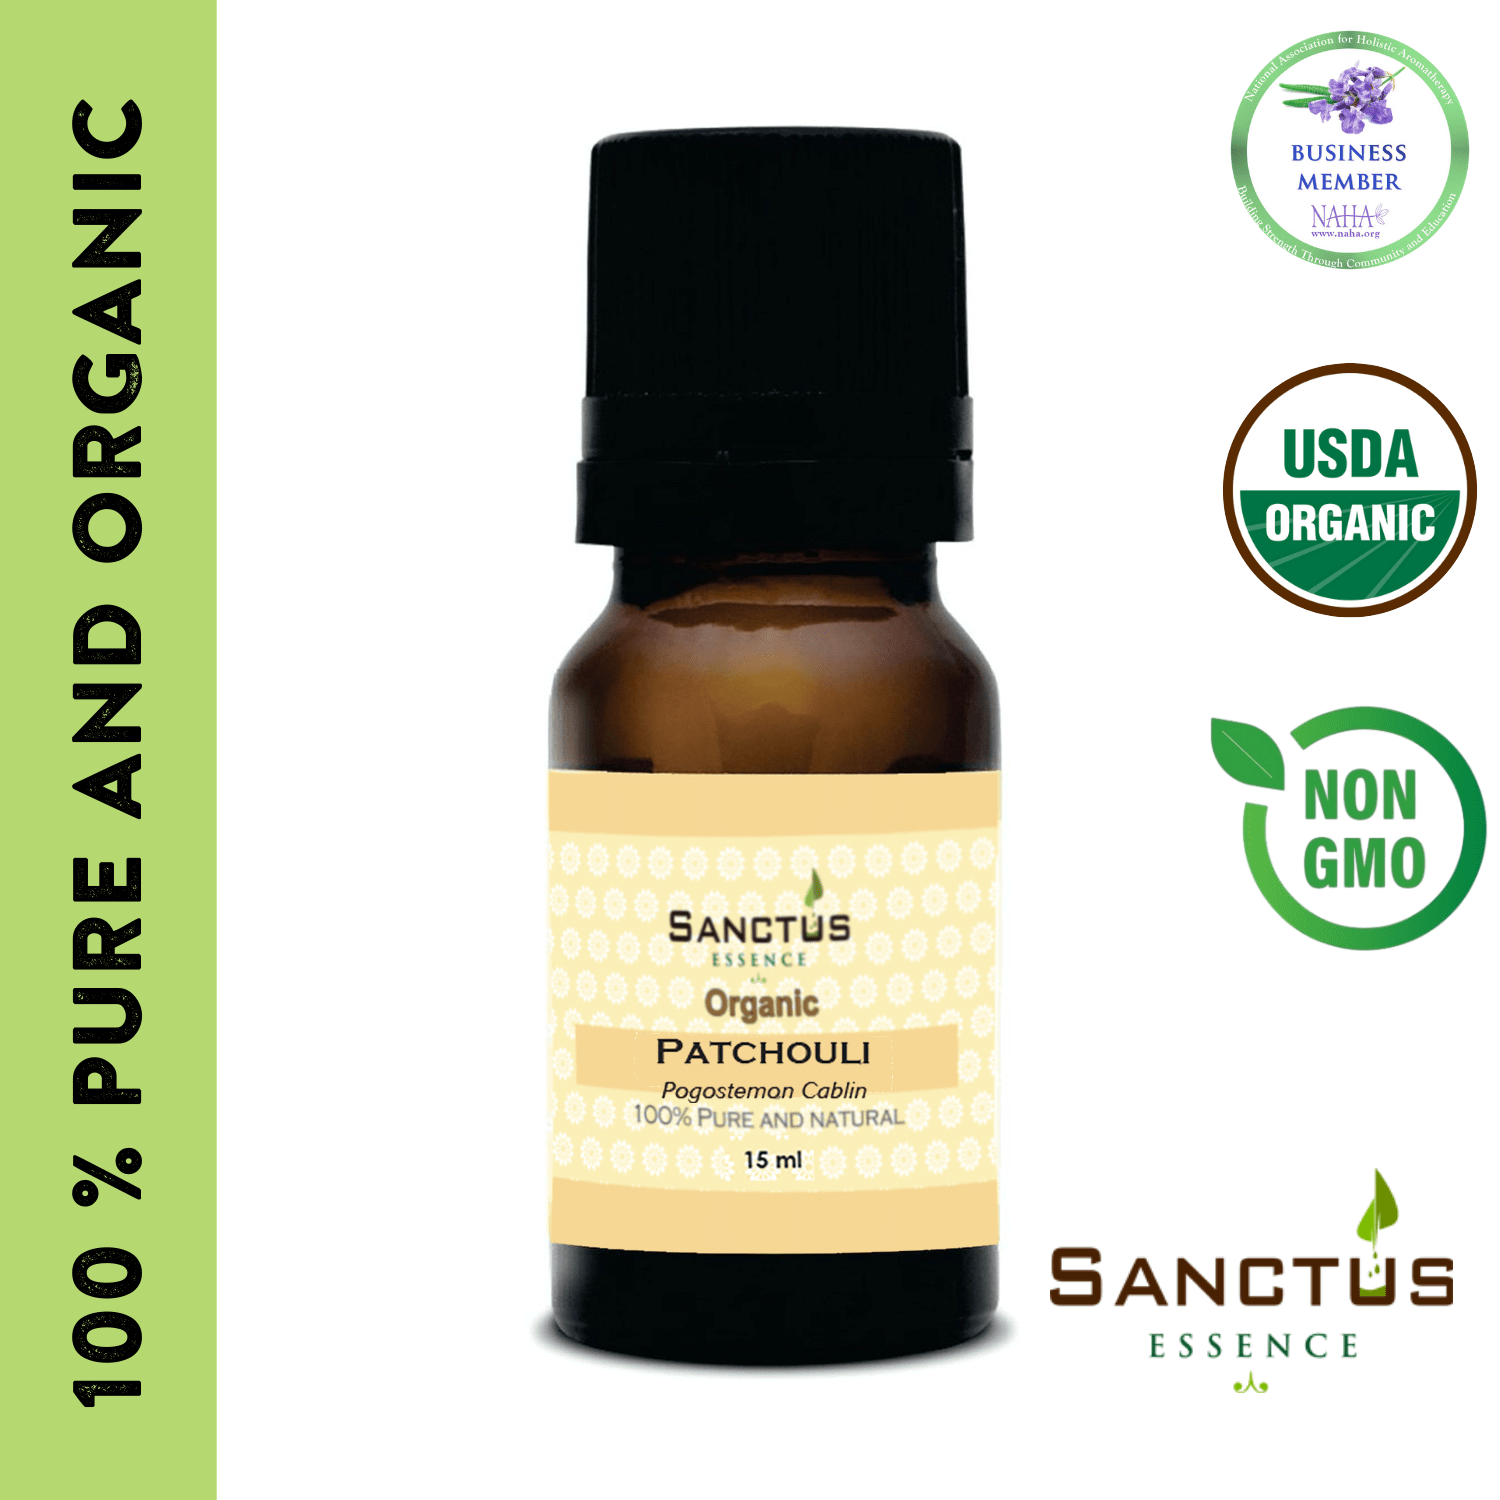 Organic Patchouli oil